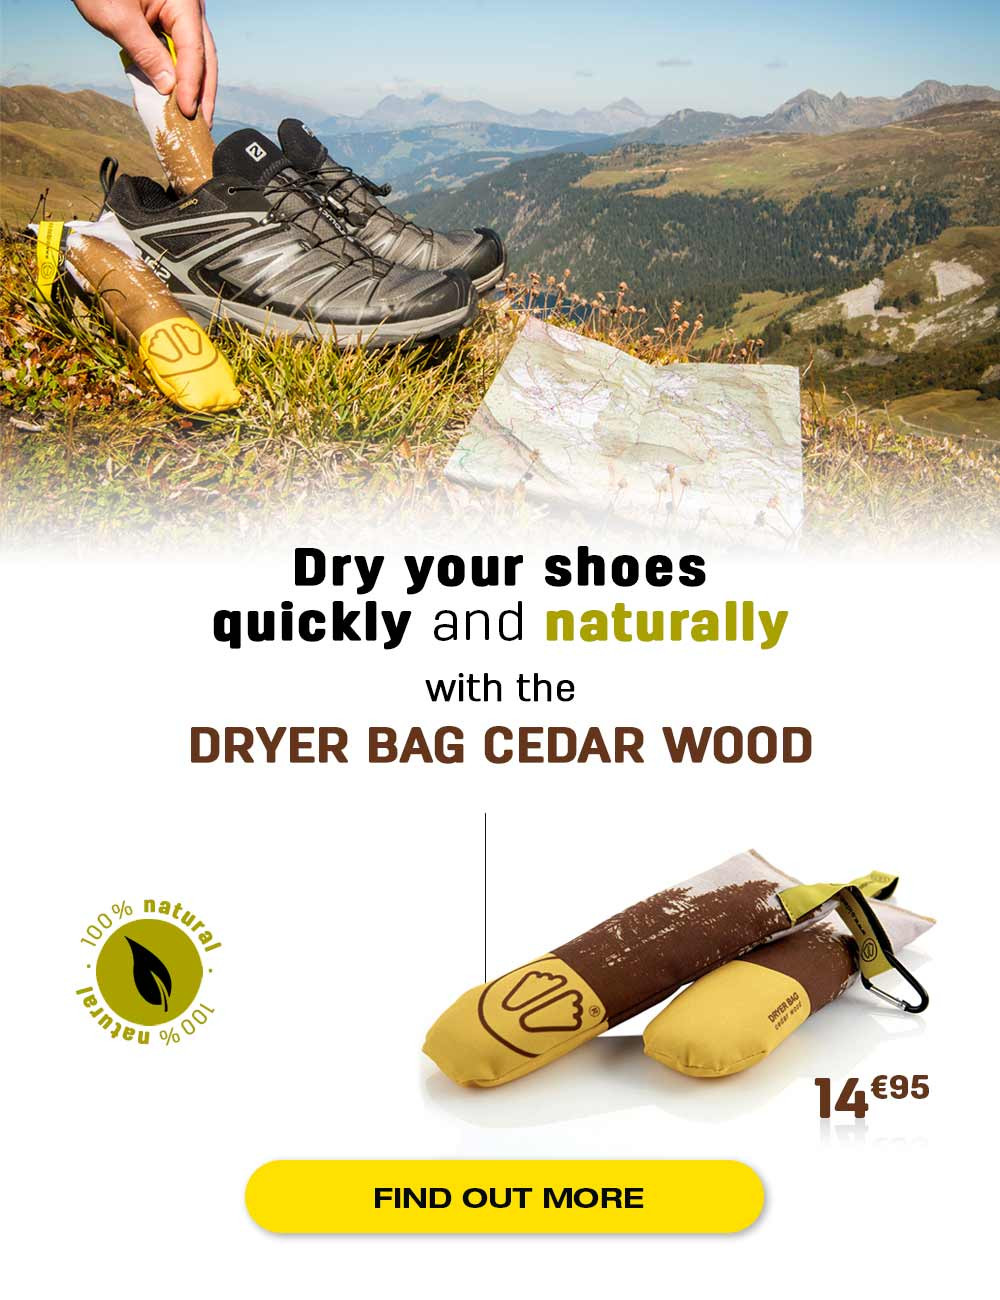 Dry naturally and quickly your shoes thanks to the action of cedar wood